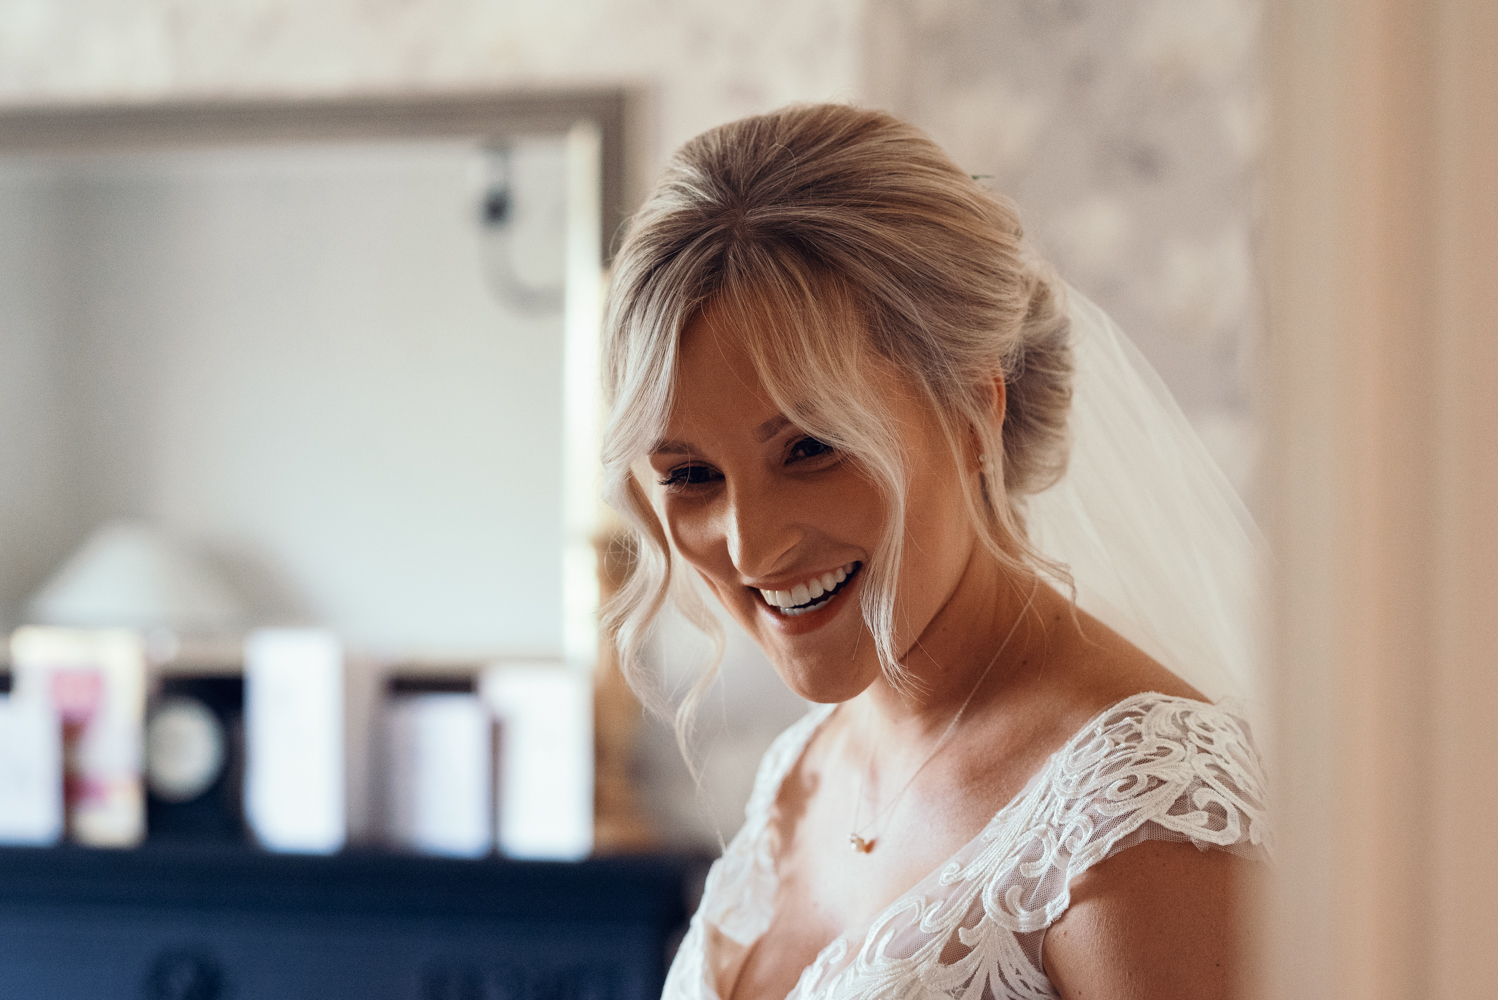 Portrait of the bride in her wedding dress before leaving home for the church